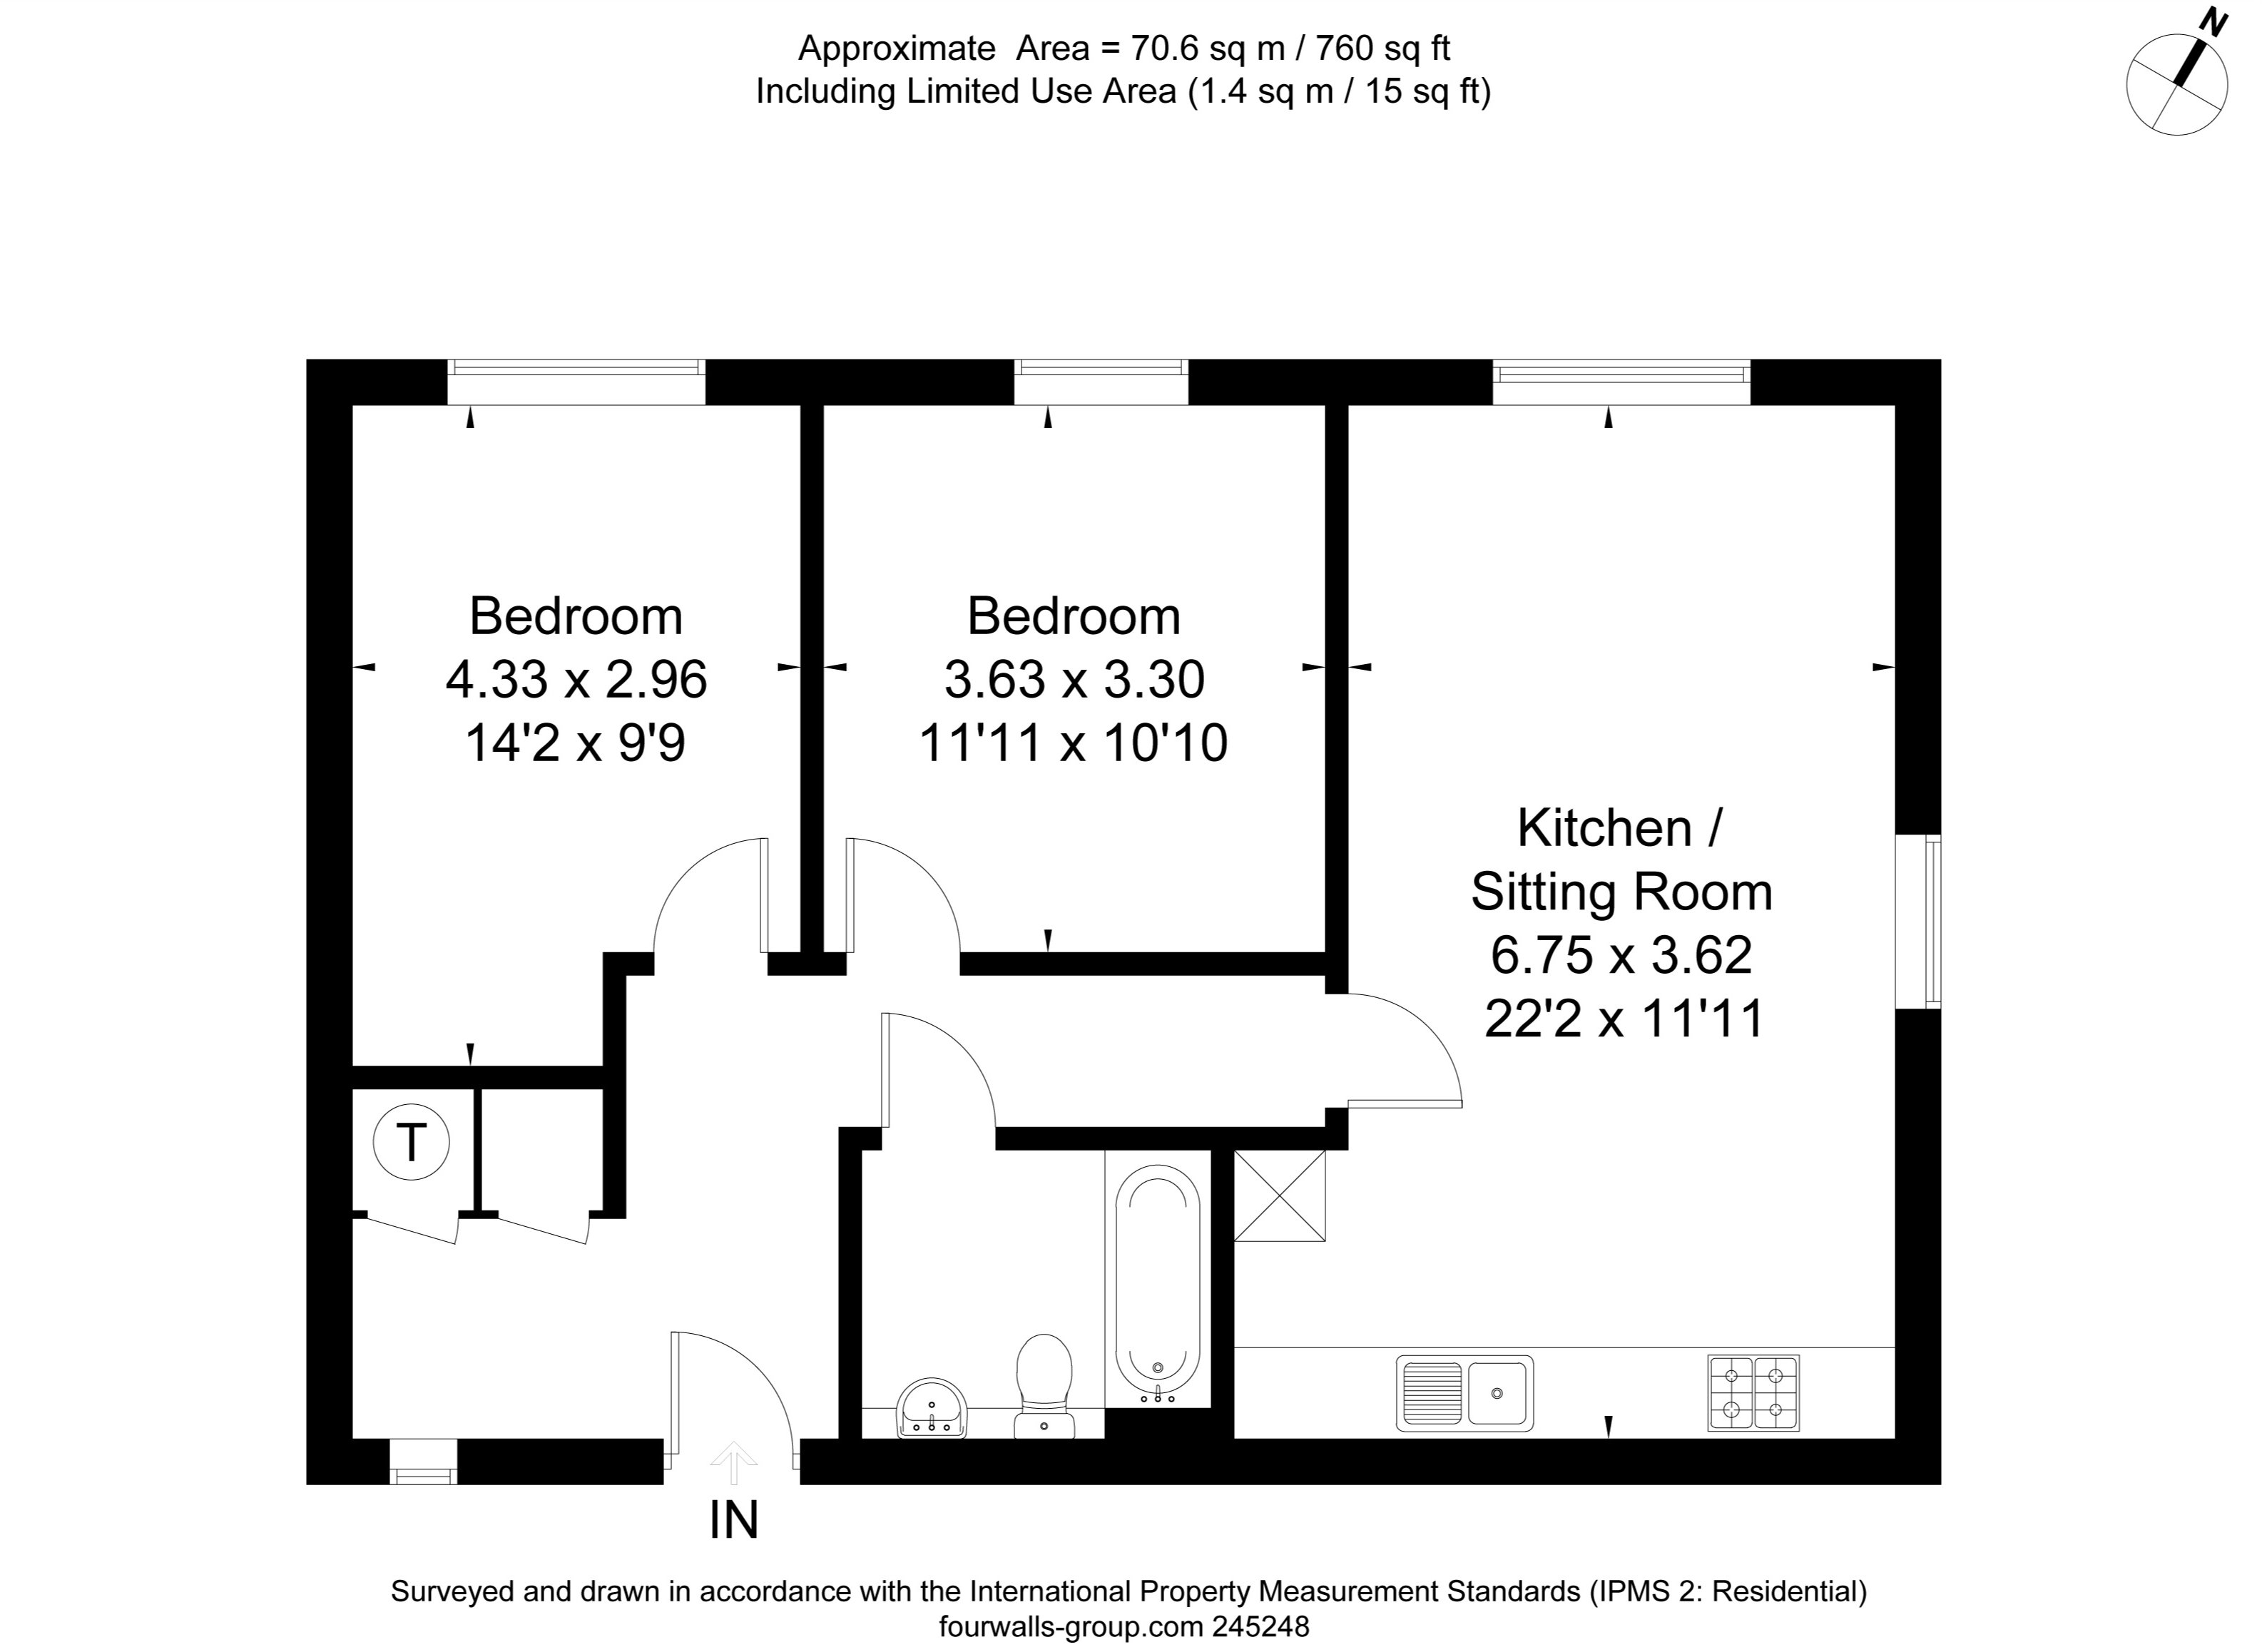 Floor Plan Ruskin Court southern Home Ownership